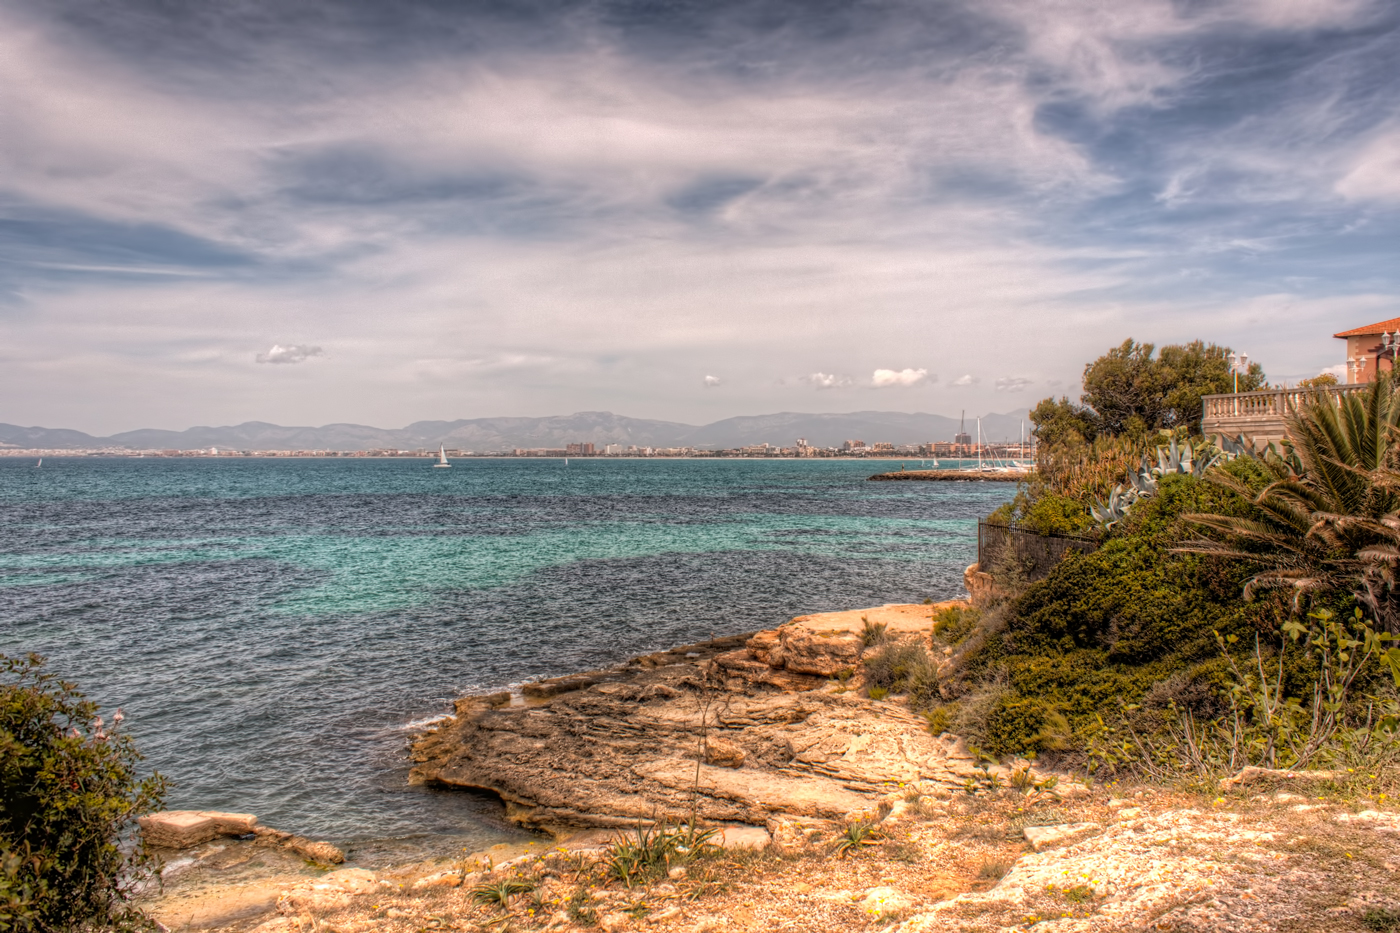 Mediterranean Sea from the Shore of Mallorca